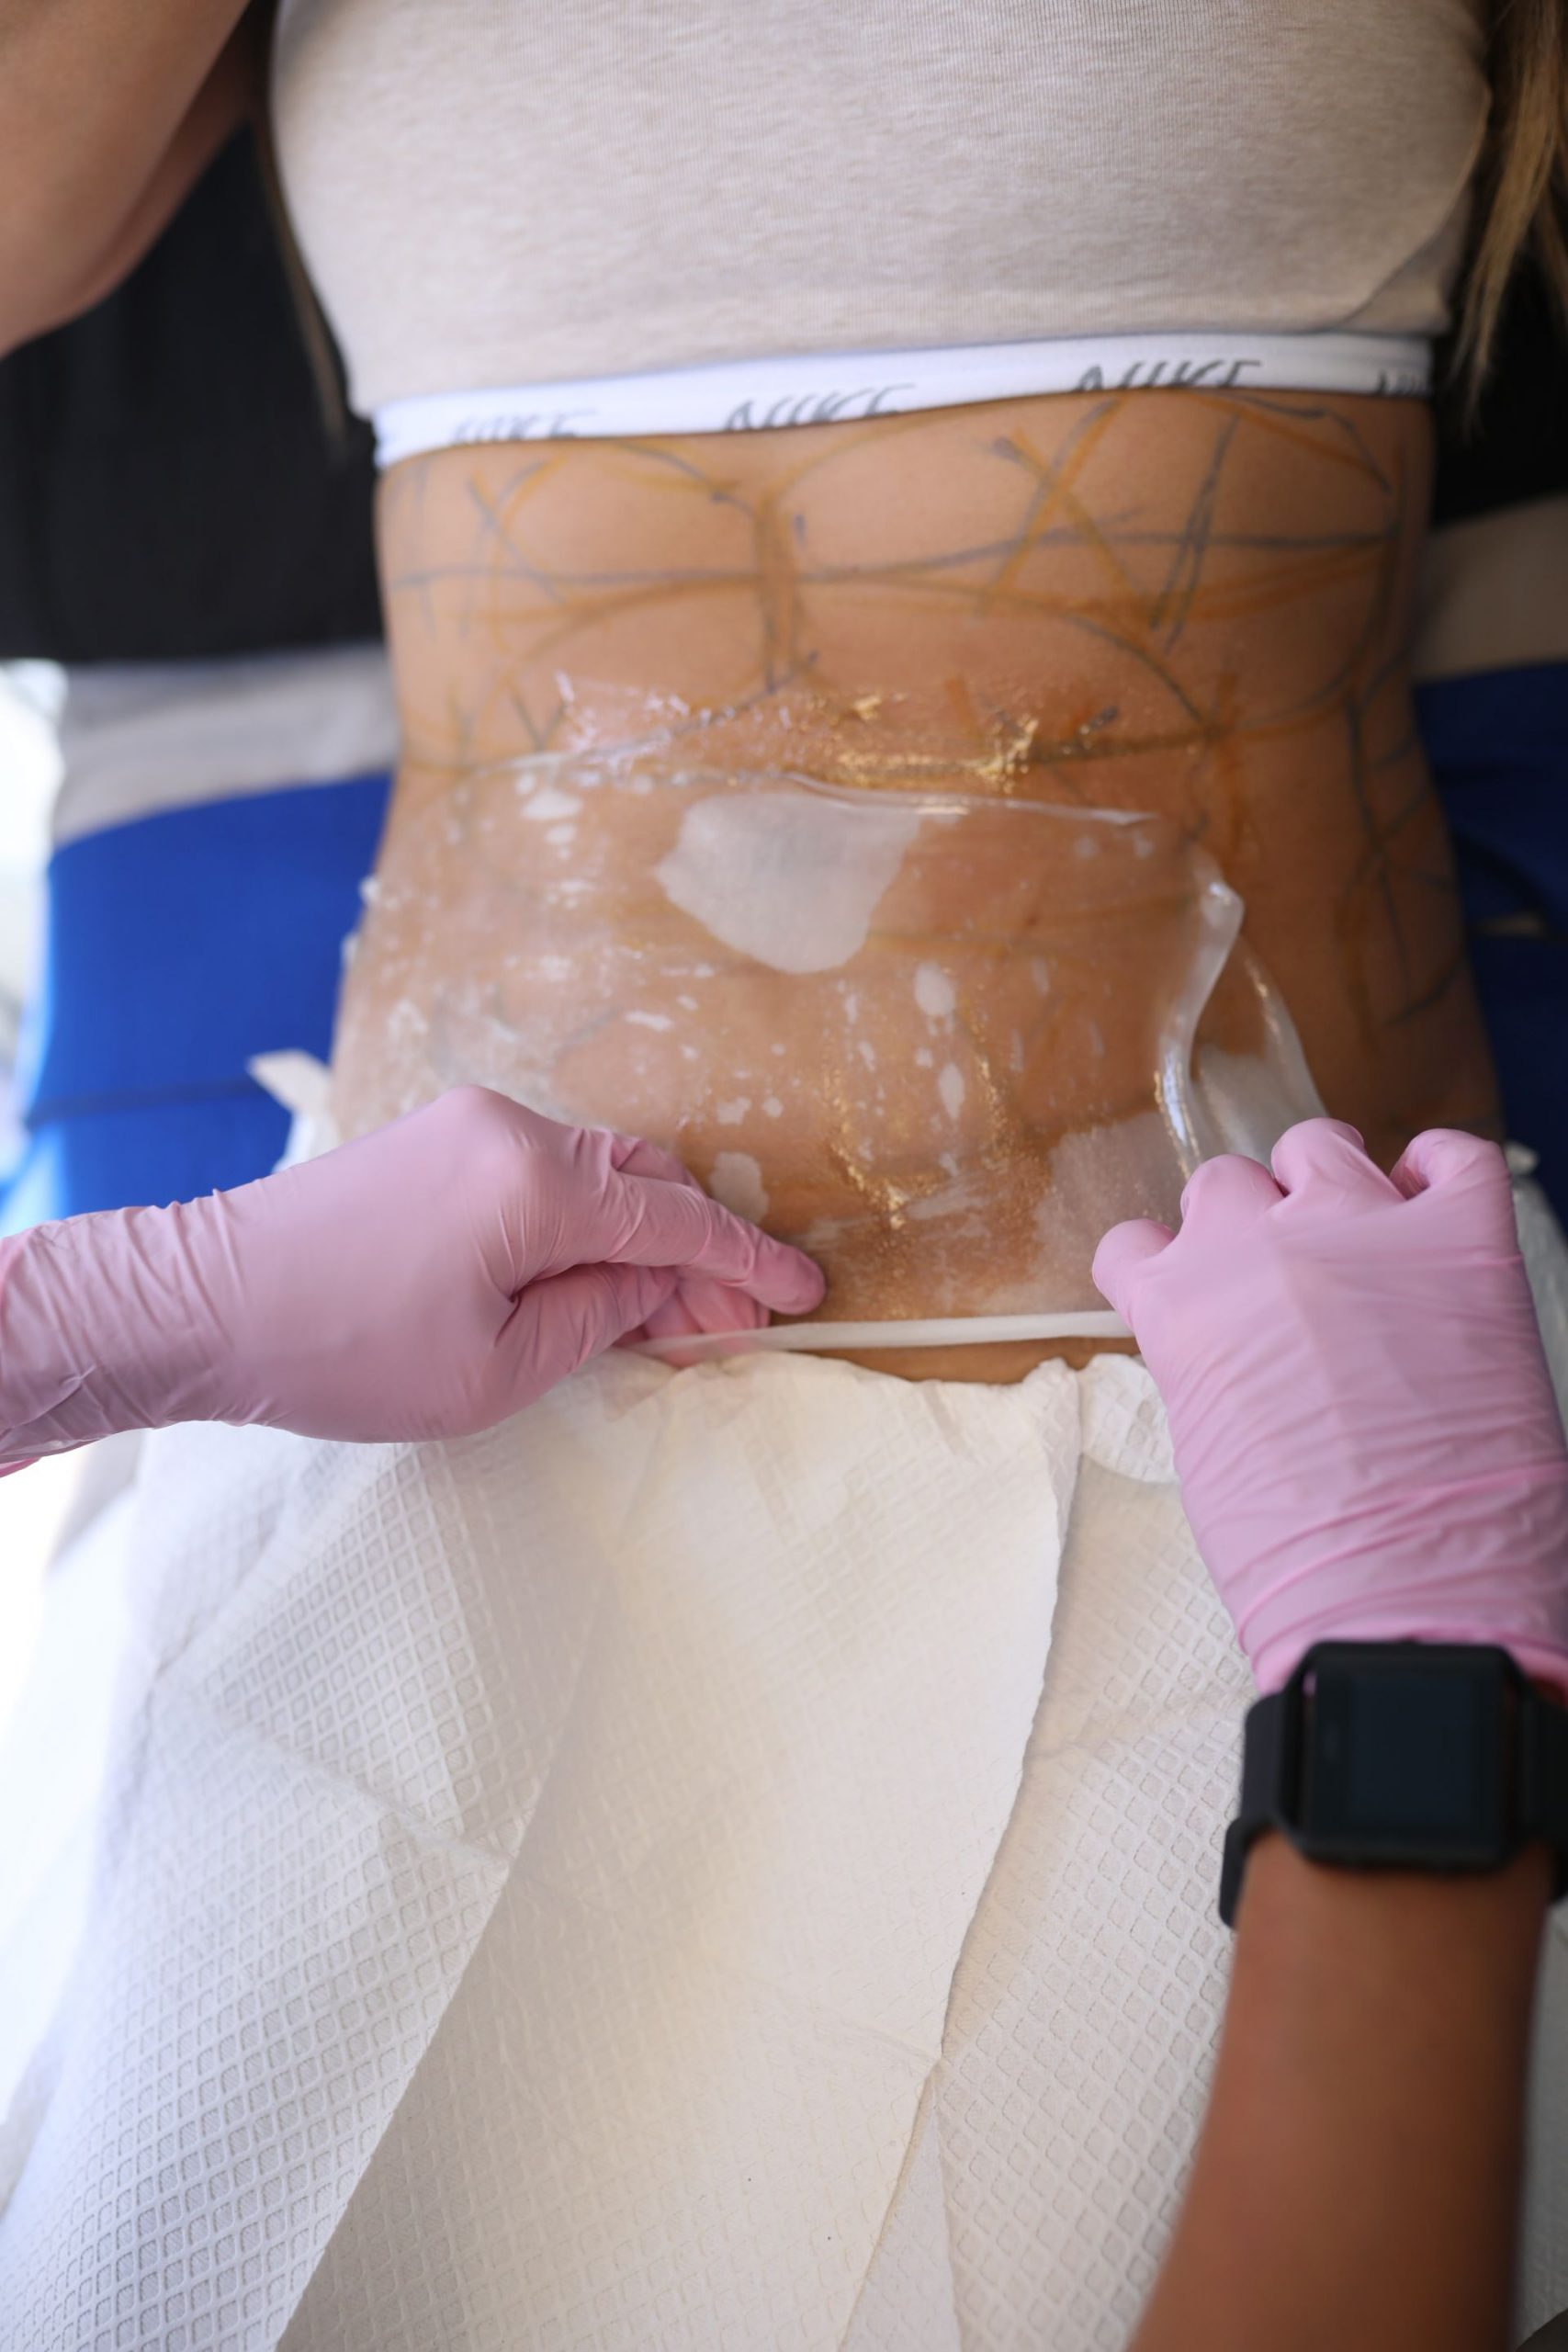 how to get rid of unwanted fat without surgery, CoolSculpting, CoolToning, my experience with CoolSculpting, CoolToning review, CoolSculpting Treatment, CoolToning Treatment, CoolSculpting review, CoolToning review, CoolSculpting before and after, CoolToning before and after, treatments for unwanted belly fat, wellness, beauty blogger, behind the scenes of beauty treatments, CoolSculpting procedure, CoolToning procedure, how to get rid of stubborn fat, Jen Worman, Red Soles and Red Wine